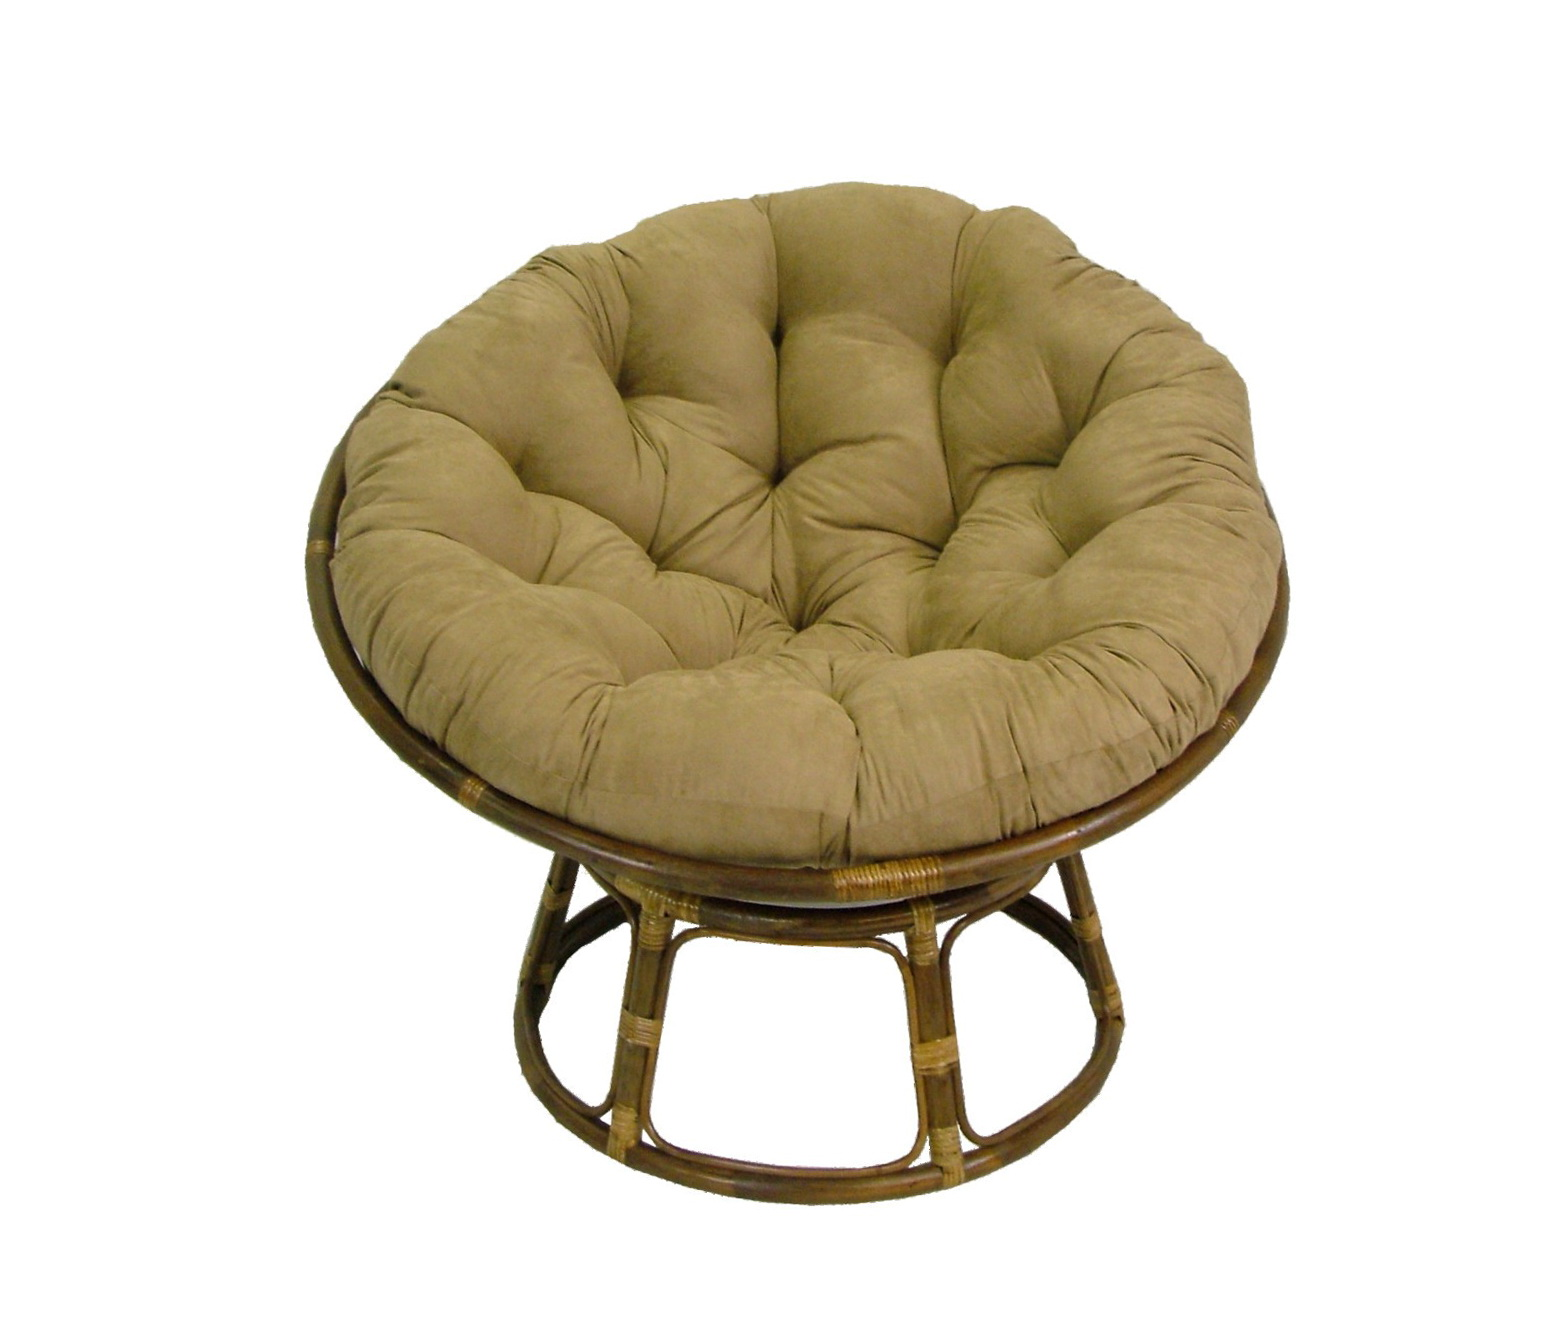 papasan chair ottoman second hand tables and chairs co uk cushions pier 1 home design ideas